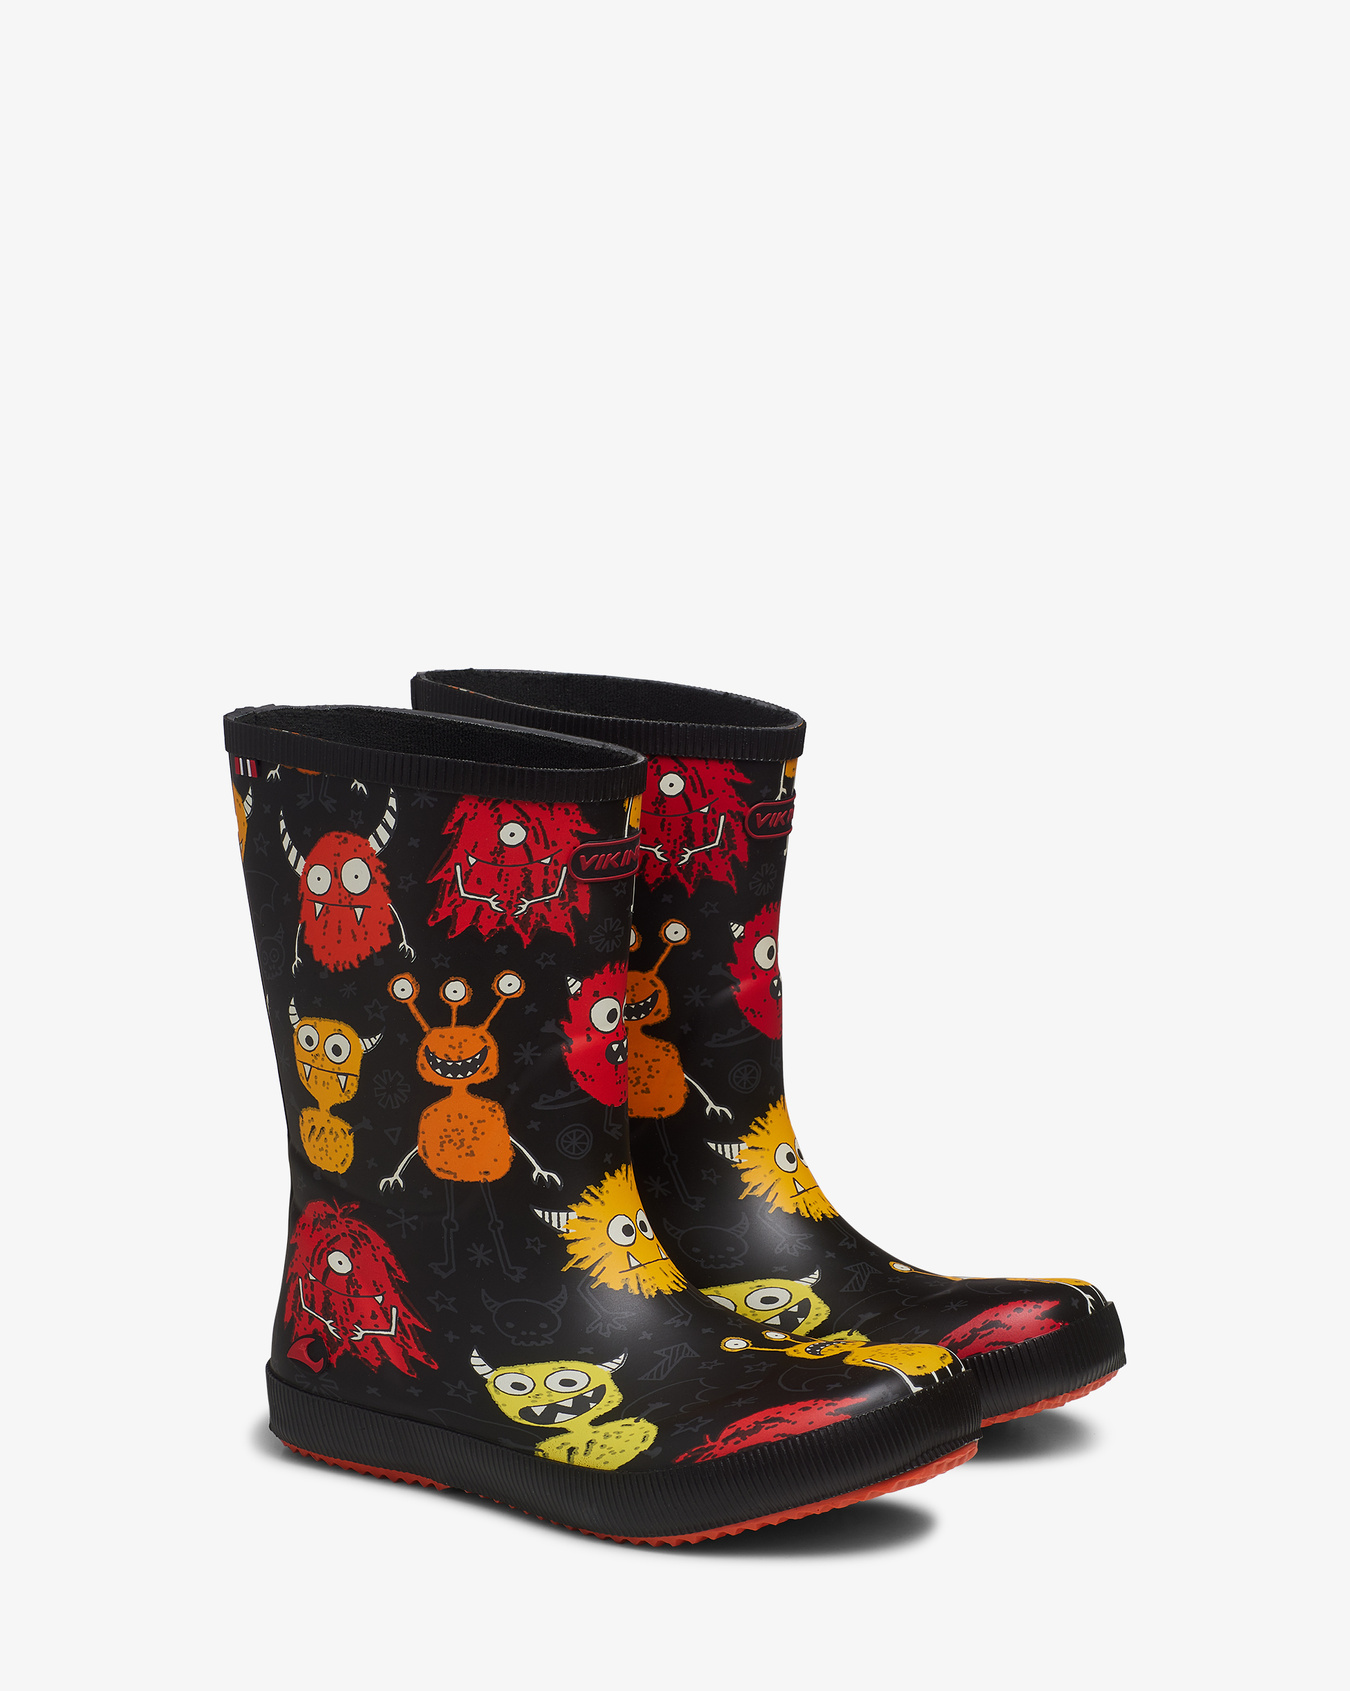 Classic Indie Monster Rubber Boot